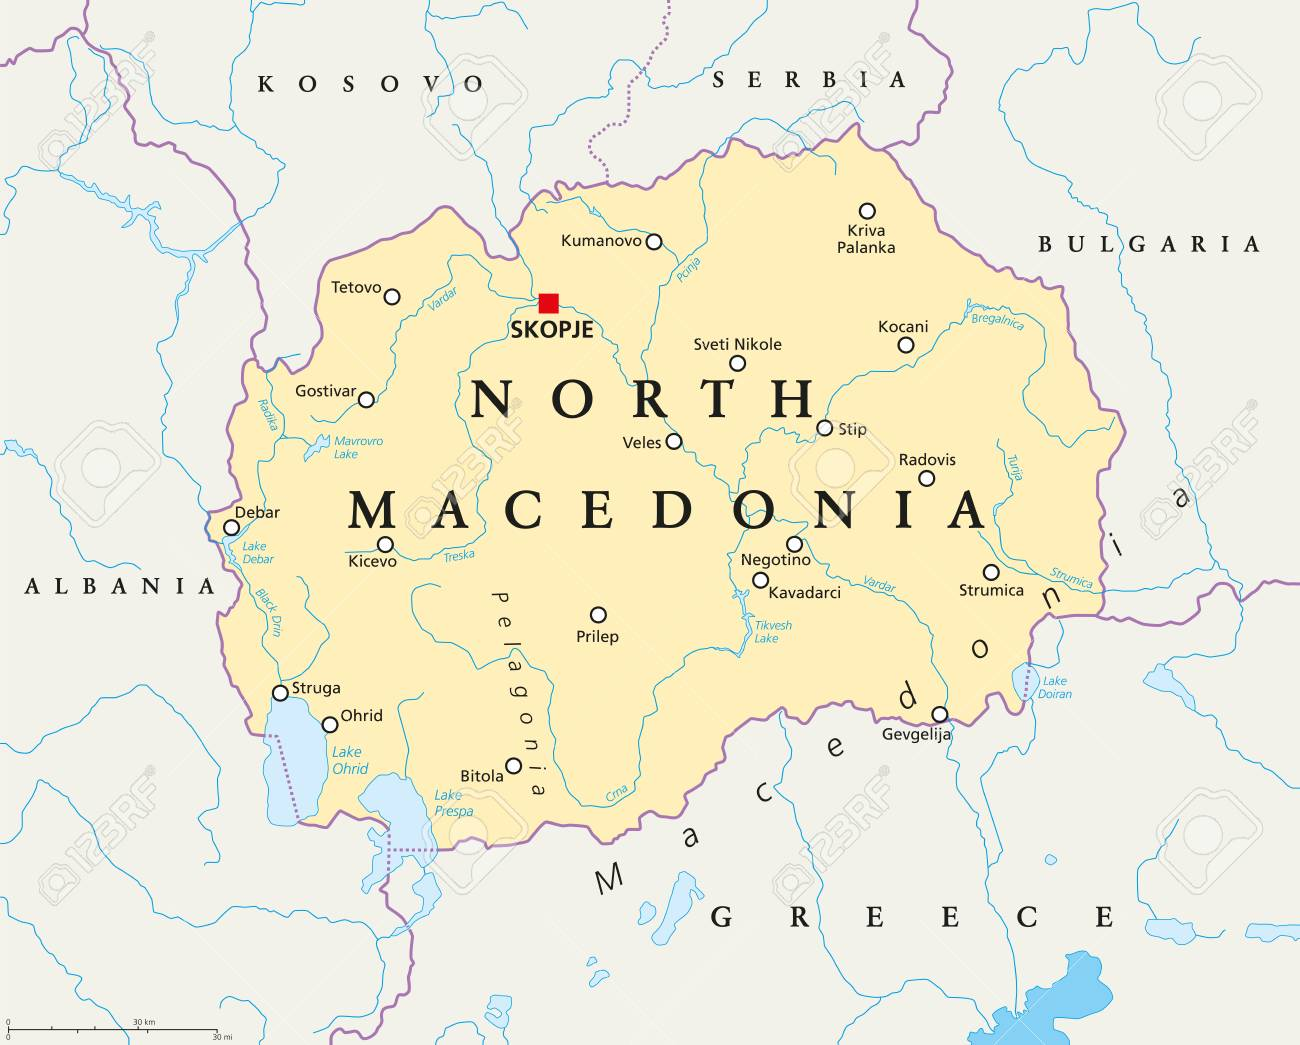 Macedonia On Map on cyprus on map, isreal on map, asia minor on map, jordan on map, athens on map, gaul on map, malta on map, constantinople on map, persian empire on map, belarus on map, san marino on map, greece on map, carthage on map, romania on map, peloponnese on map, albania on map, crete on map, moldova on map, armenia on map, aegean sea on map,